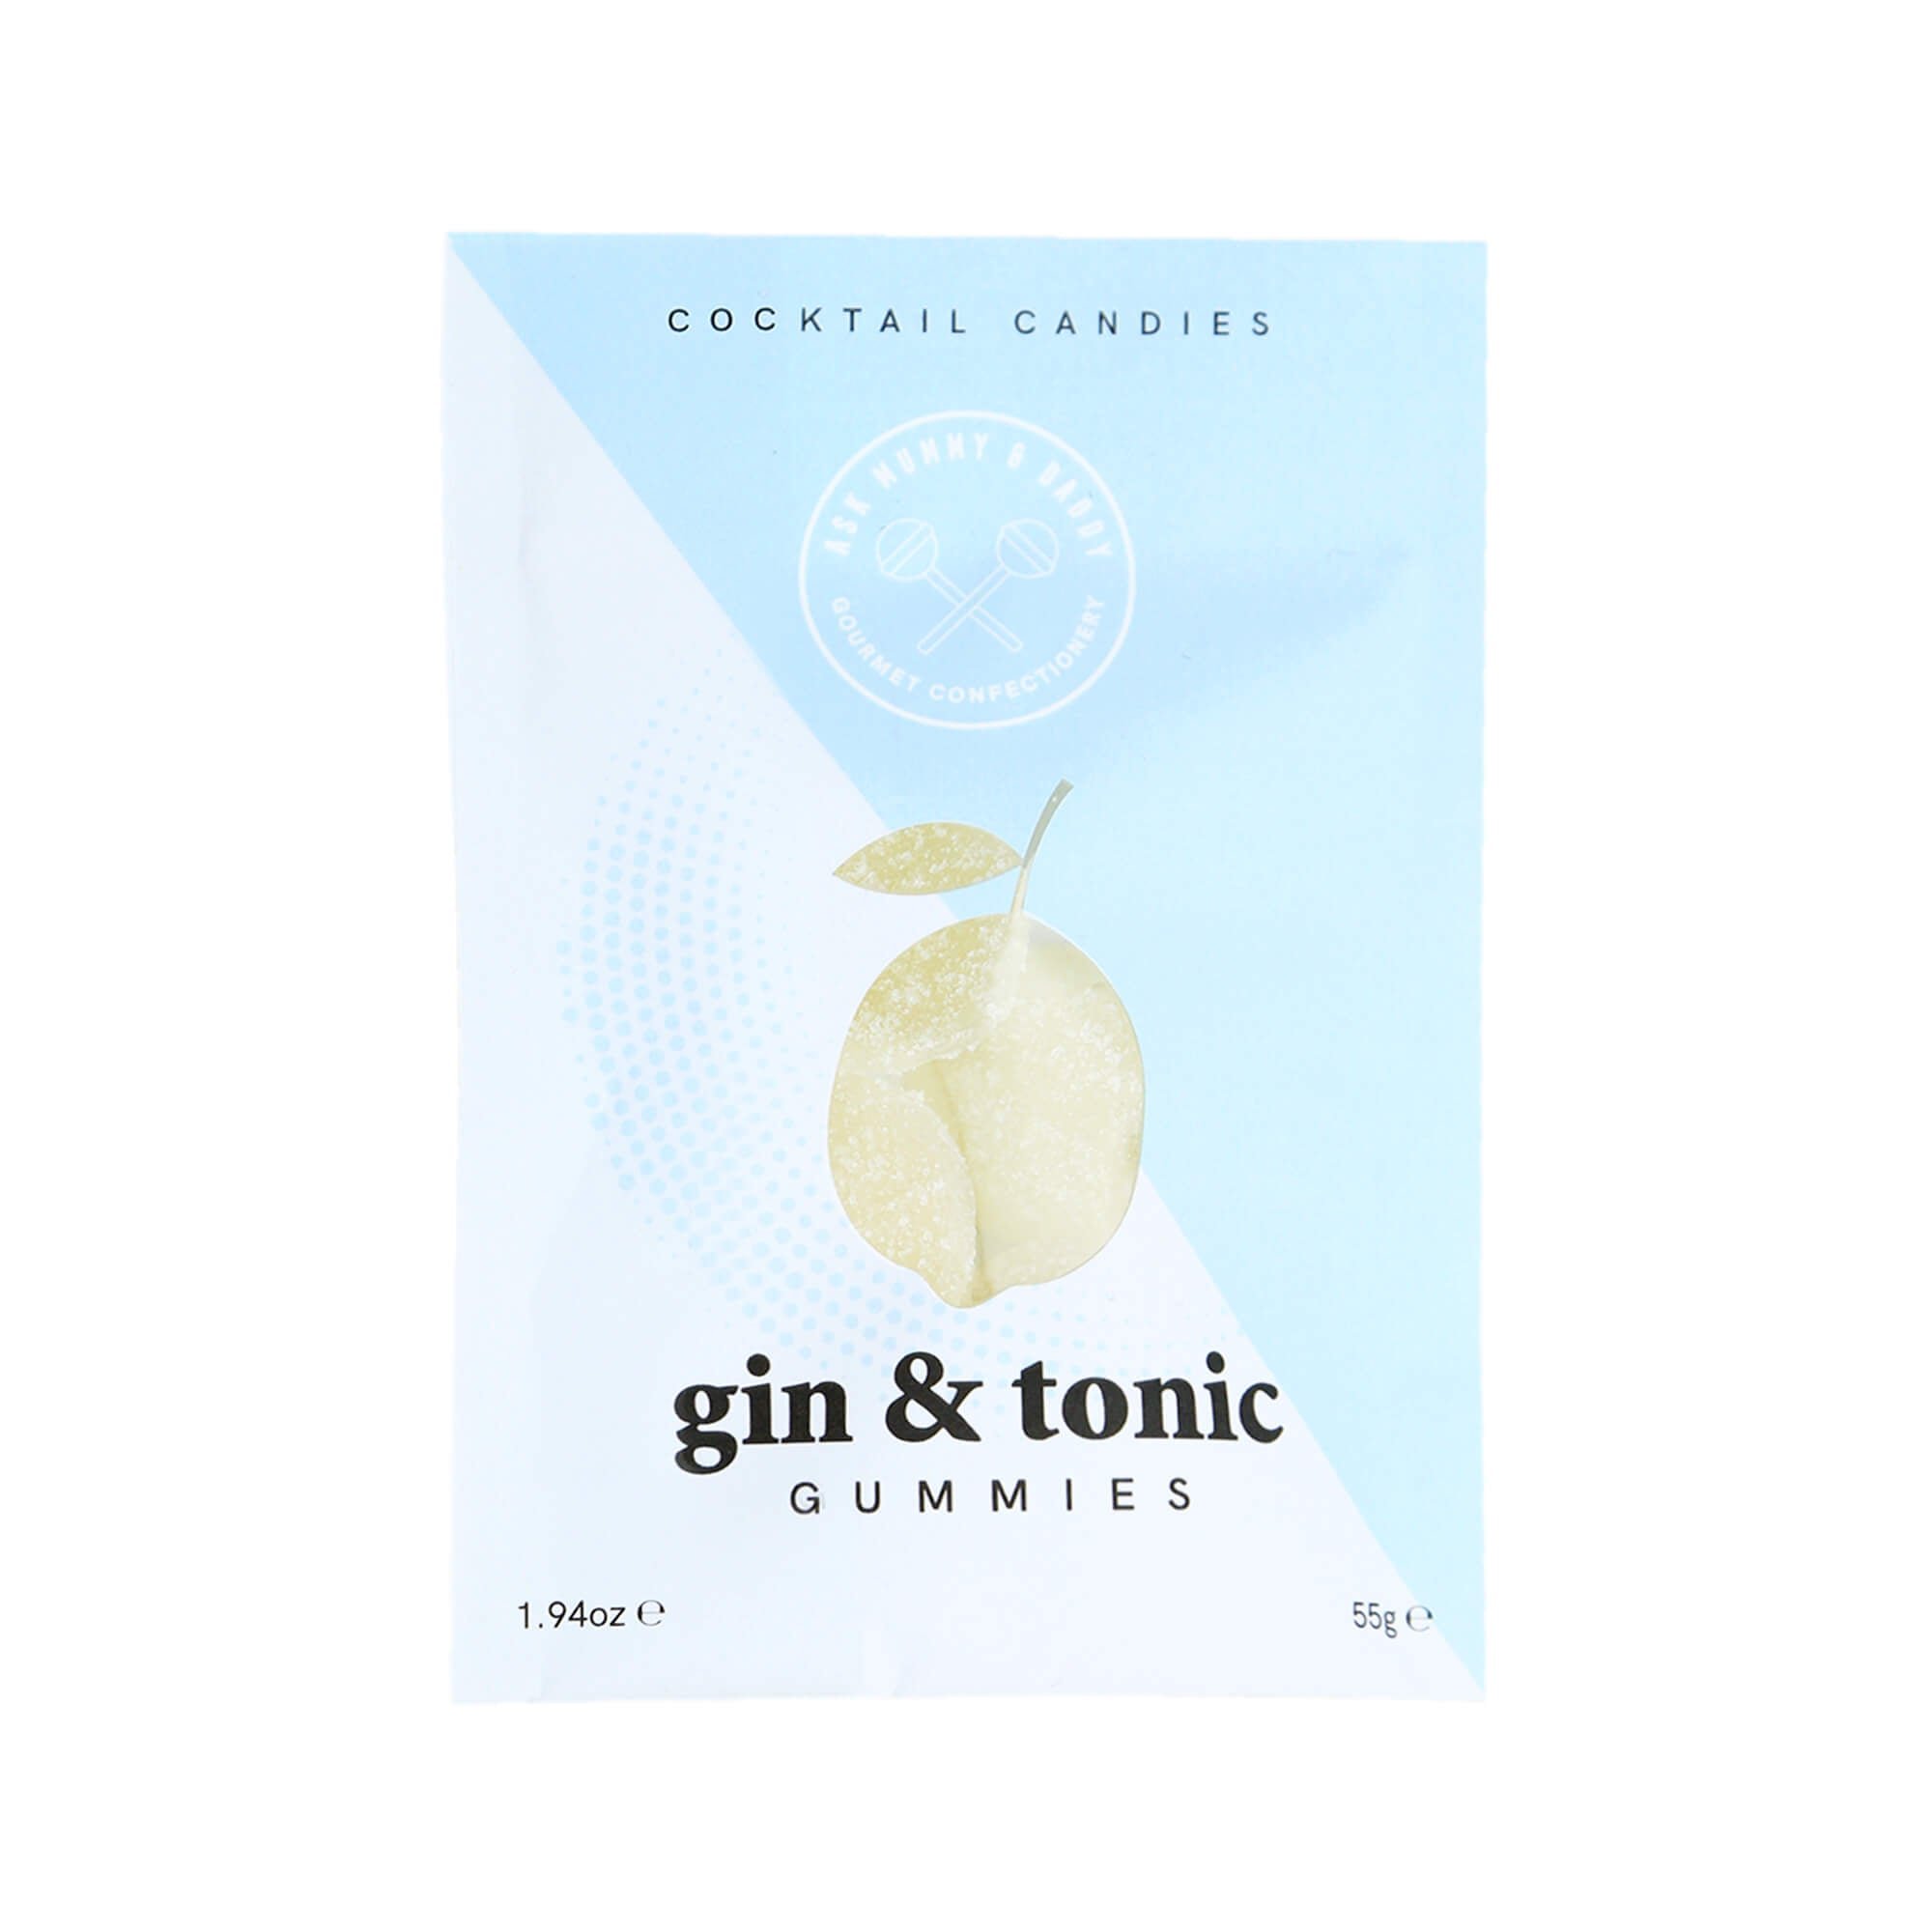 GIN & TONIC GUMMIES BY ASK MUMMY & DADDY